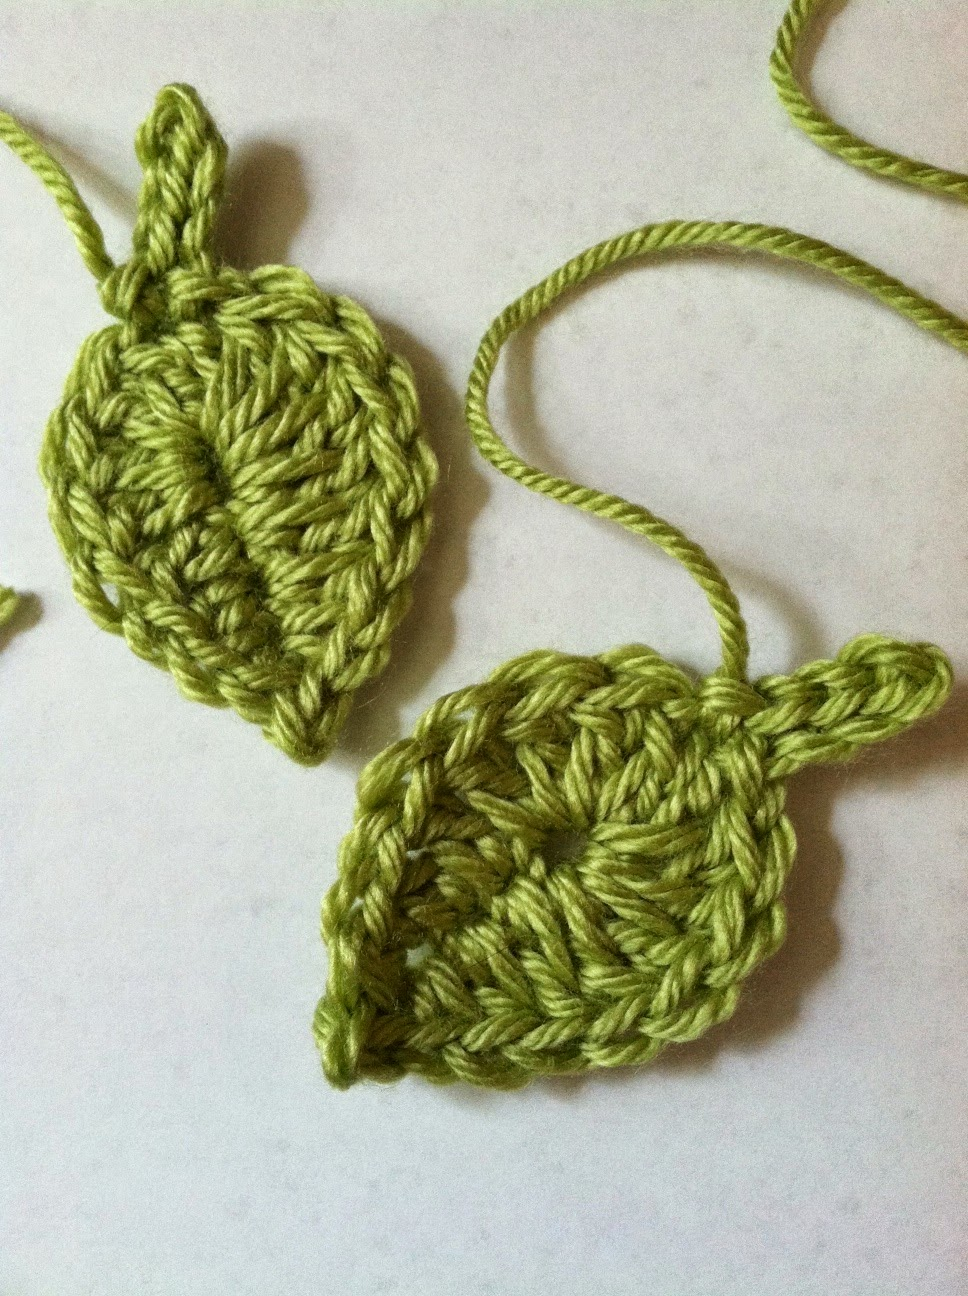 Crocheting Leaves : ... Cottage Kids: A Little Leaf ..... FREE Crochet Leaf Pattern